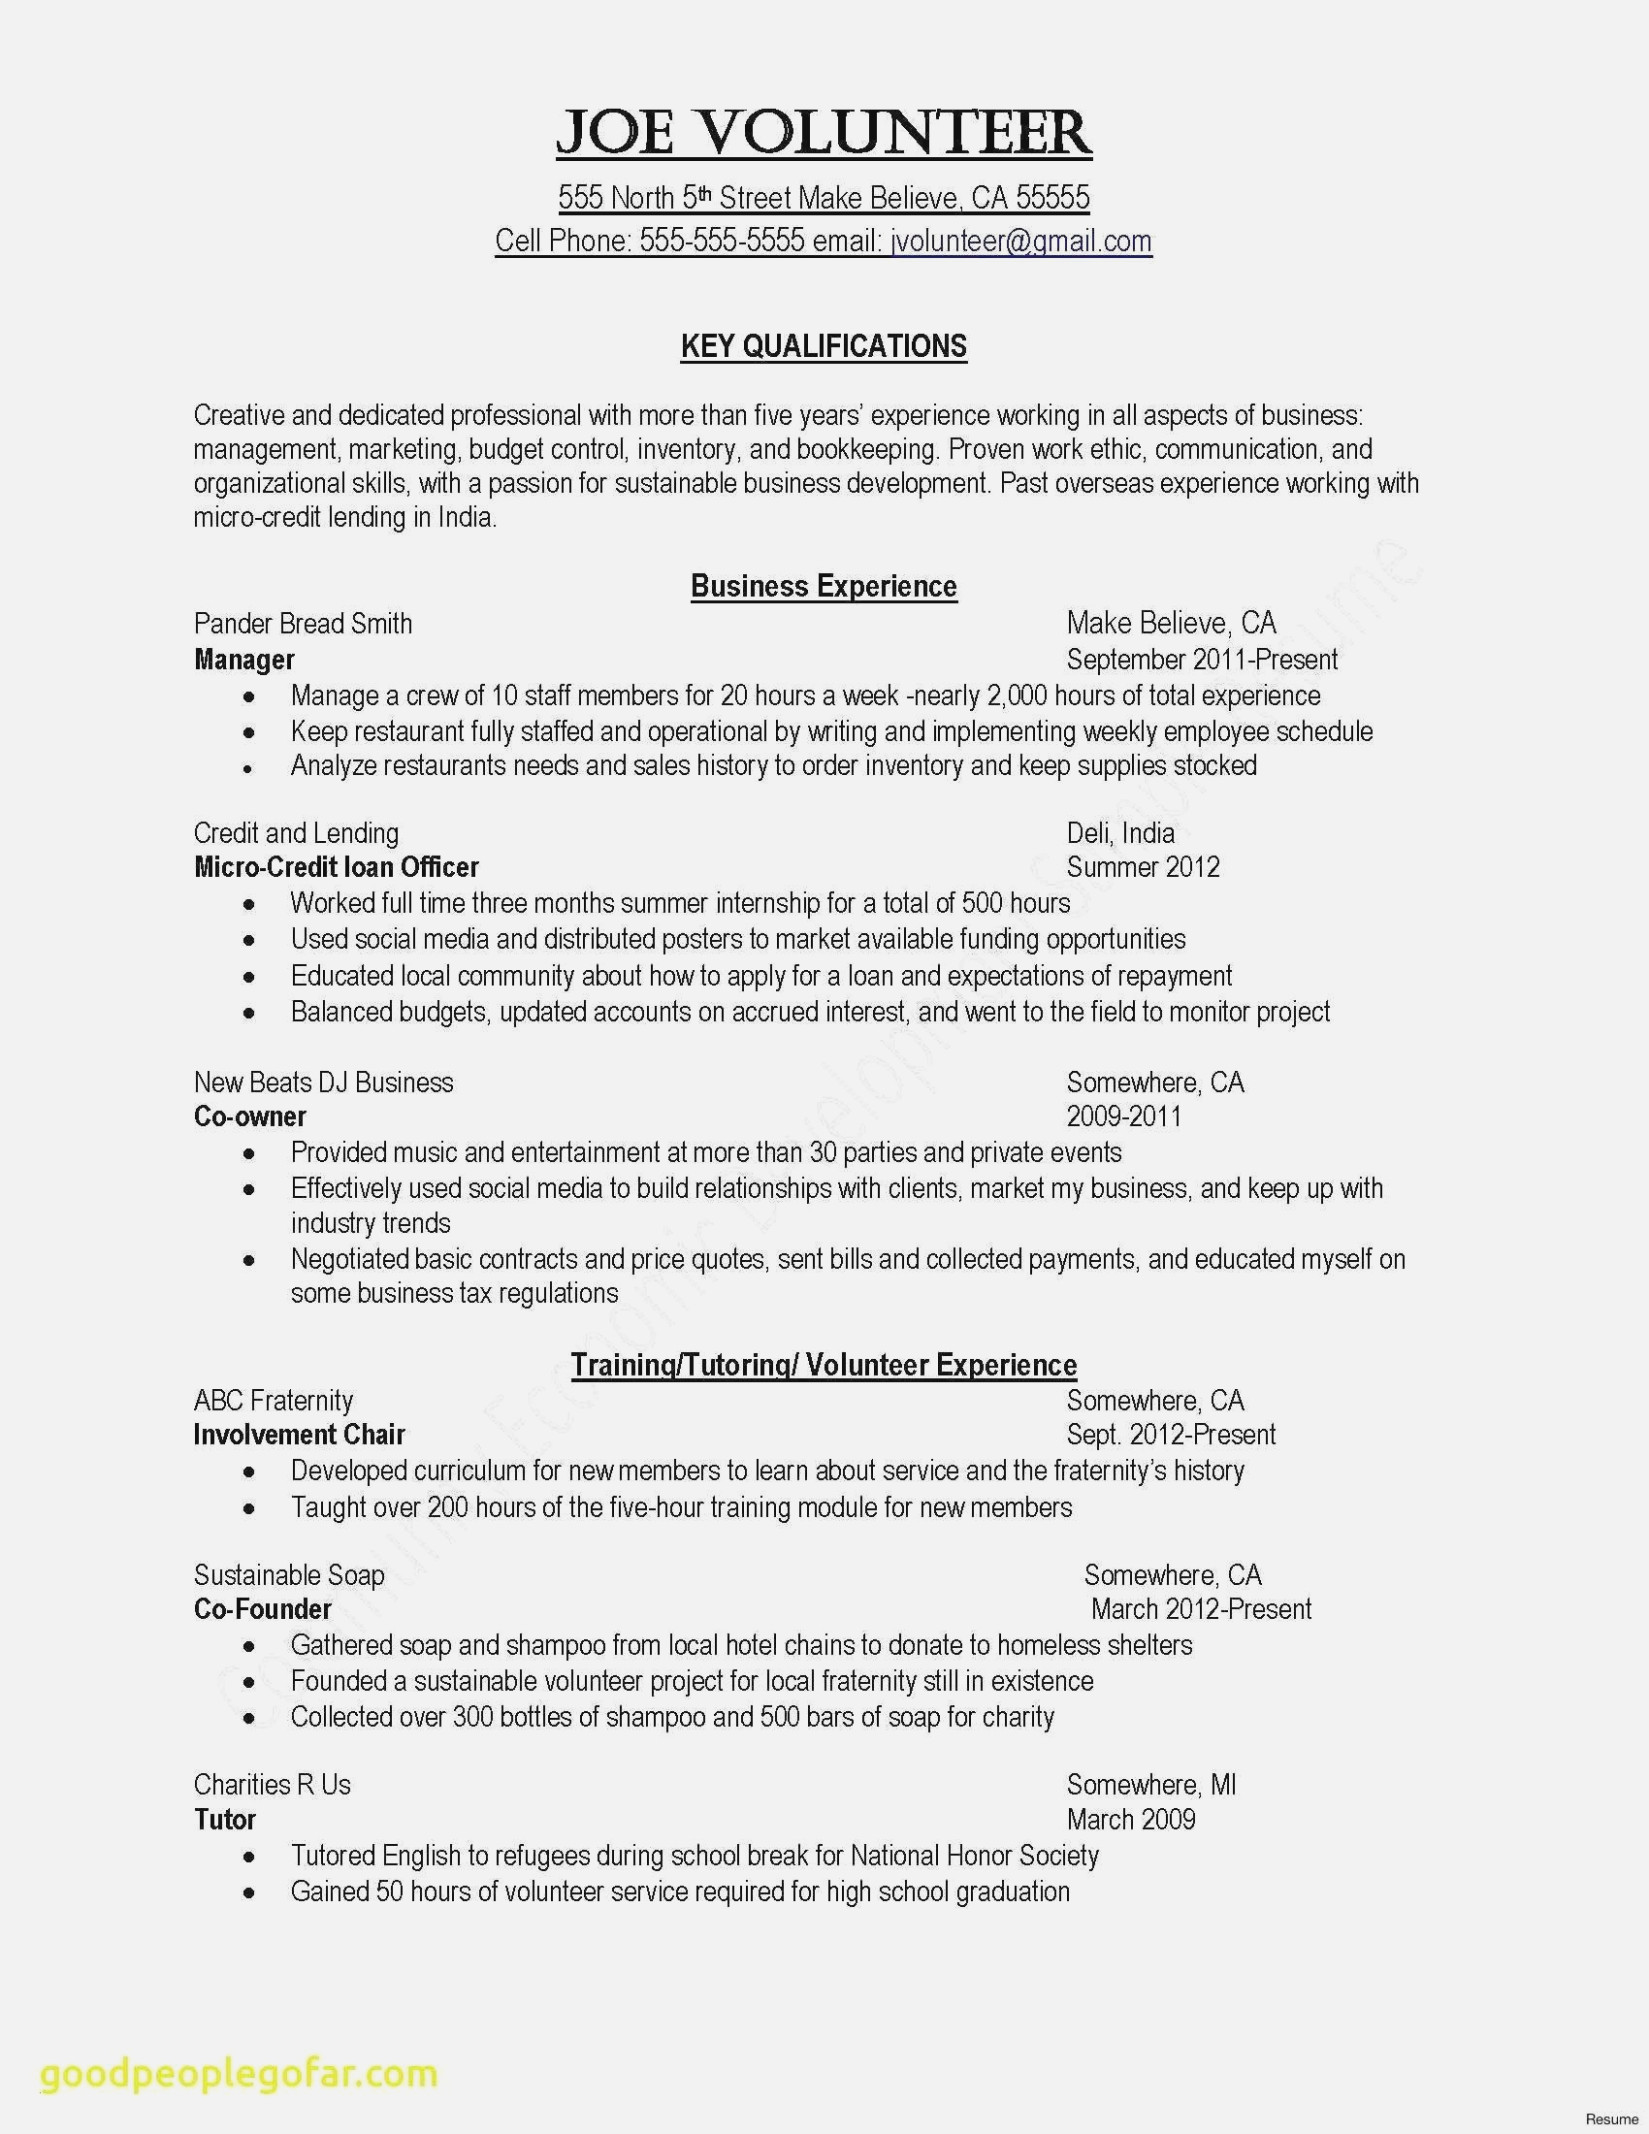 Good Objective For Resume Objectives To Put On A Resume Qualified Good Objective Resume Good Objectives To Put On A Resume good objective for resume wikiresume.com